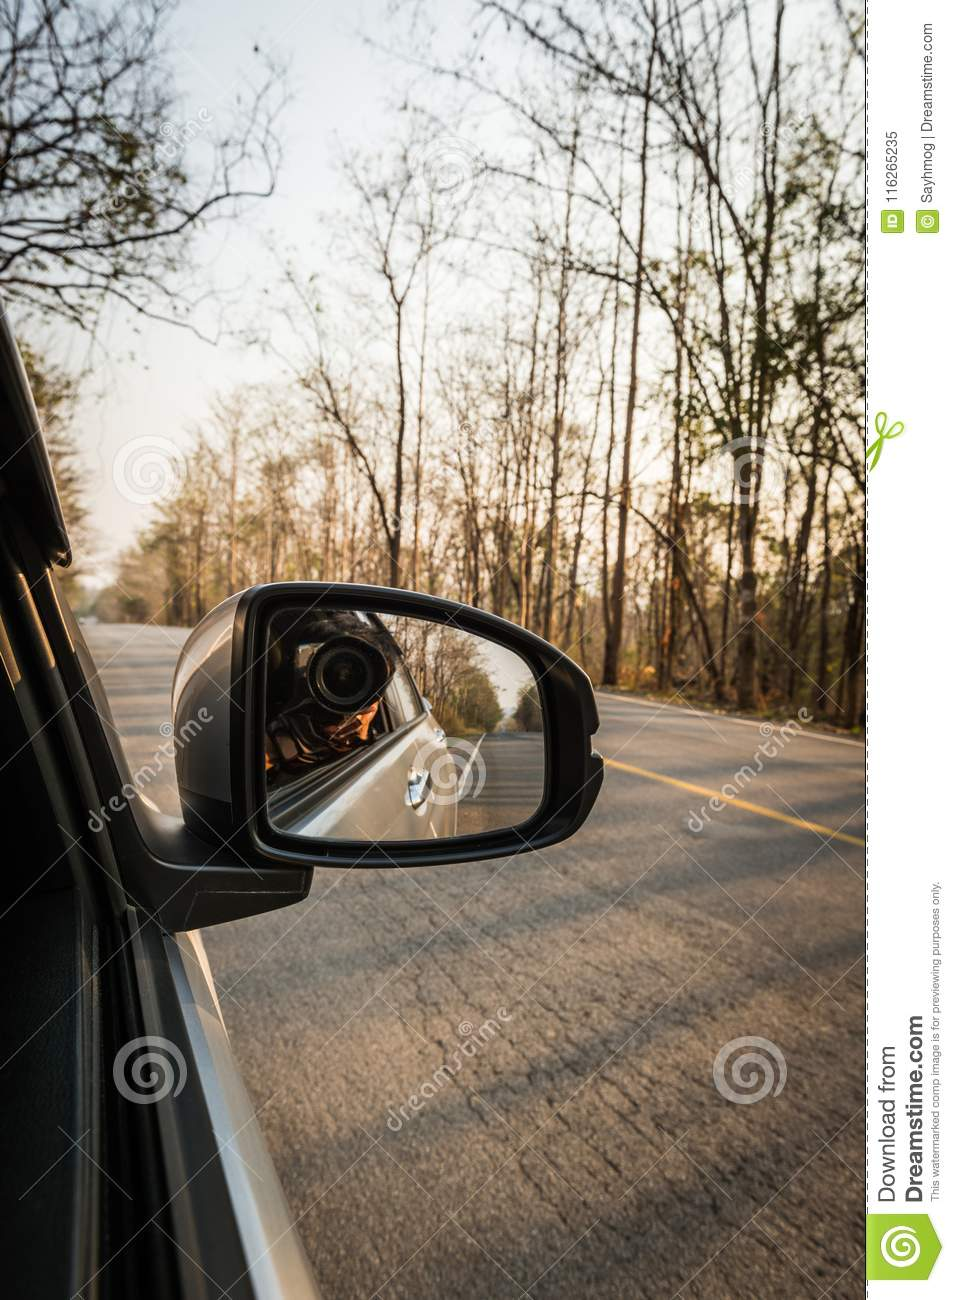 What to take on the road by car